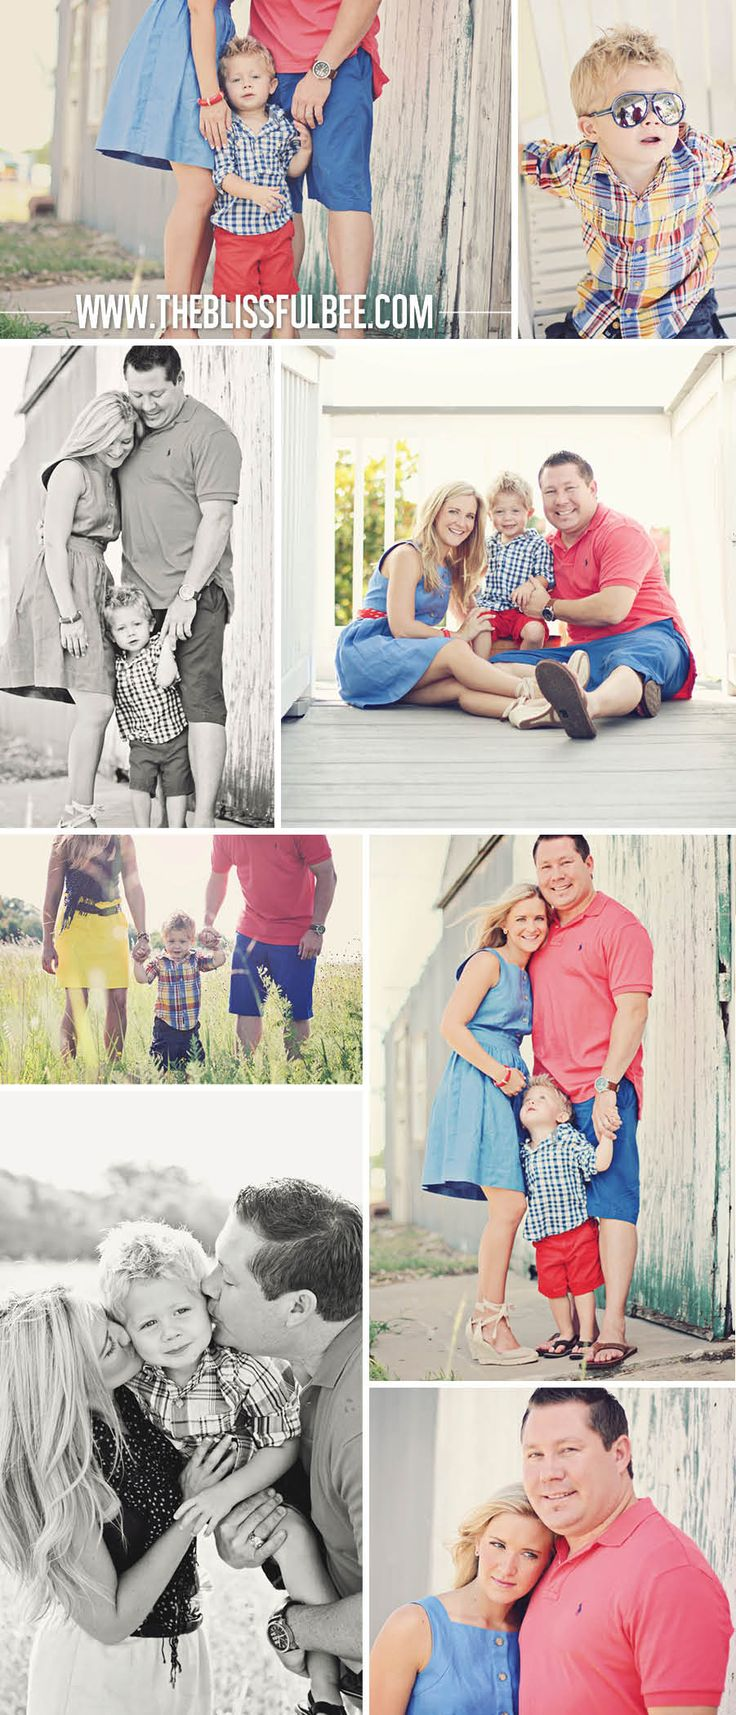 Family Photography at The Blissful Bee Blog